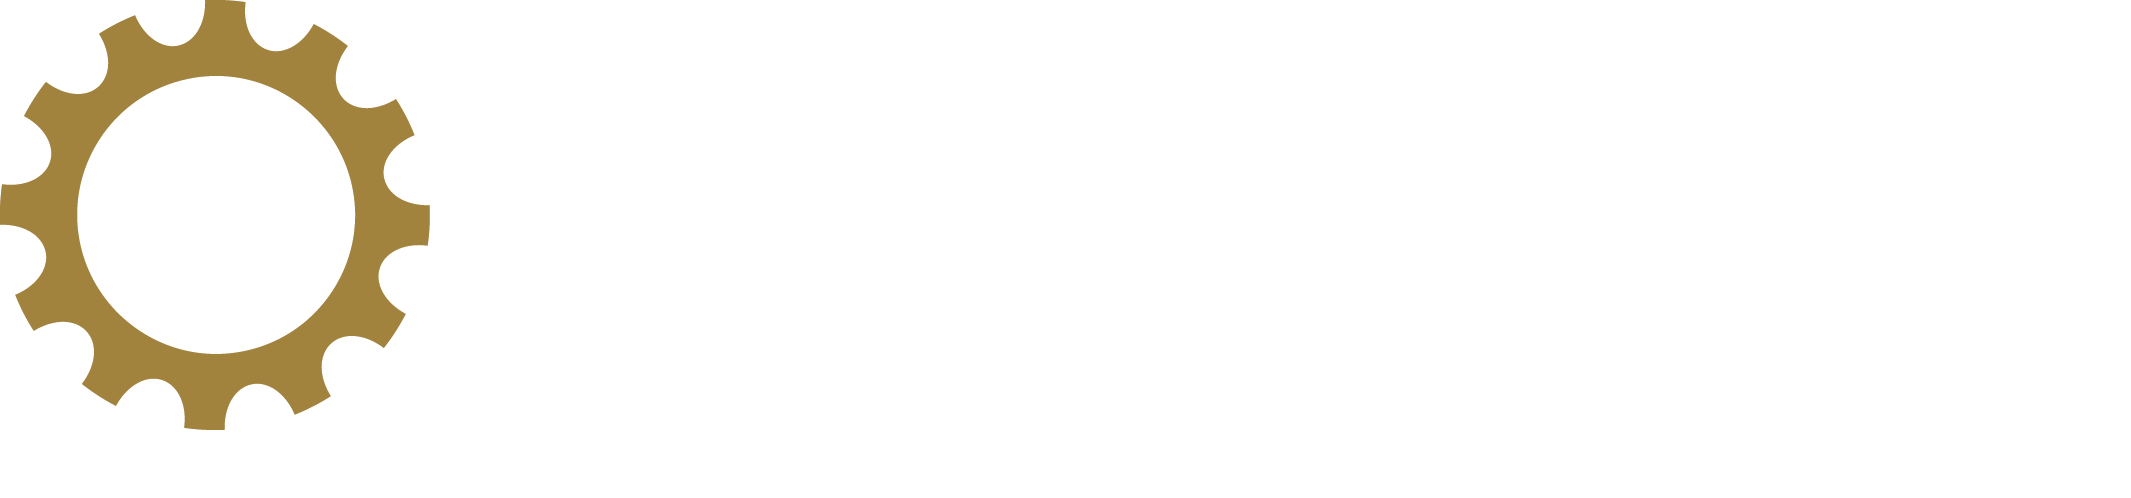 Elevation church png. Job opportunities